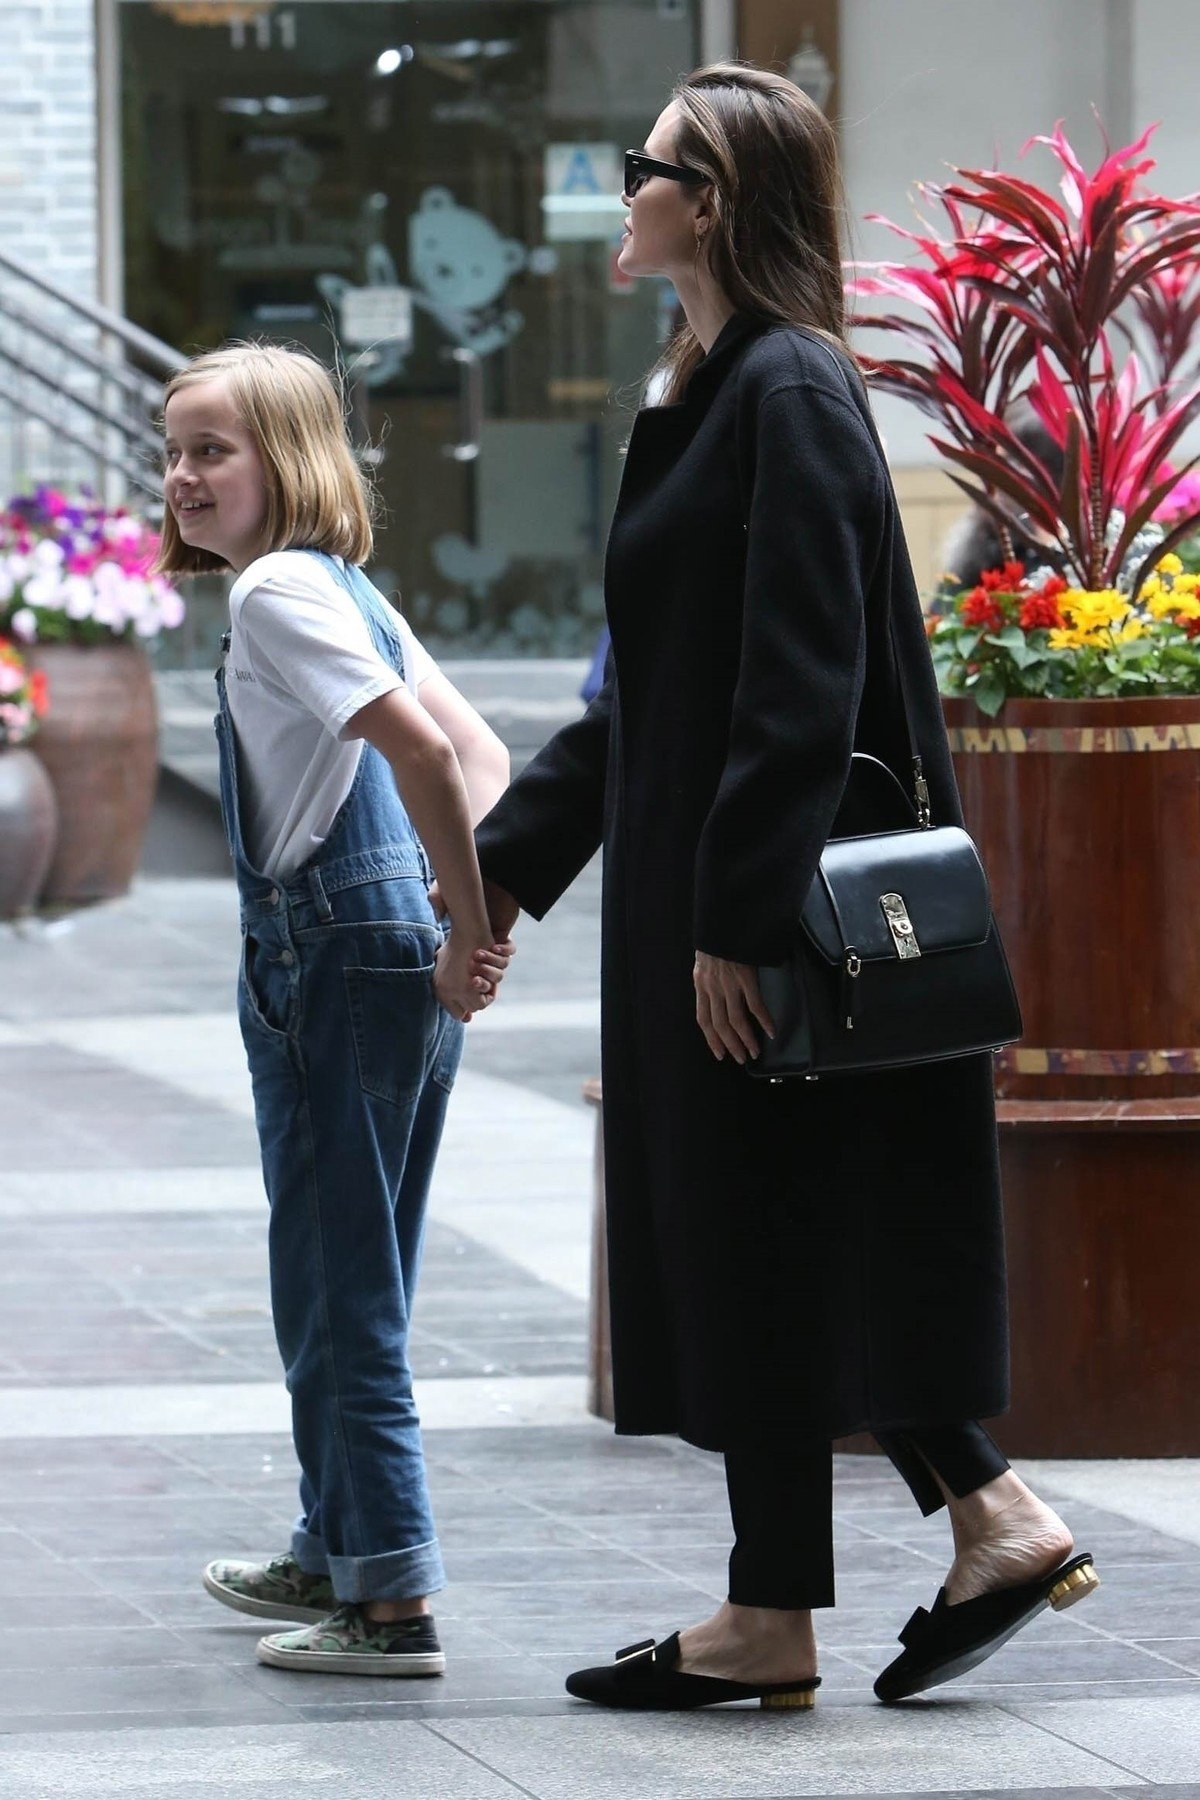 ** RIGHTS: WORLDWIDE EXCEPT IN ITALY ** Los Angeles, CA  - *EXCLUSIVE*  - Actress Angelina Jolie spends the day with daughter Vivienne. Both check out a few stores at a local mall in Los Angeles.  Pictured: Angelina Jolie, Vivienne Jolie-Pitt    *UK Clients - Pictures Containing Children Please Pixelate Face Prior To Publication*, Image: 429548460, License: Rights-managed, Restrictions: , Model Release: no, Credit line: Profimedia, Backgrid USA